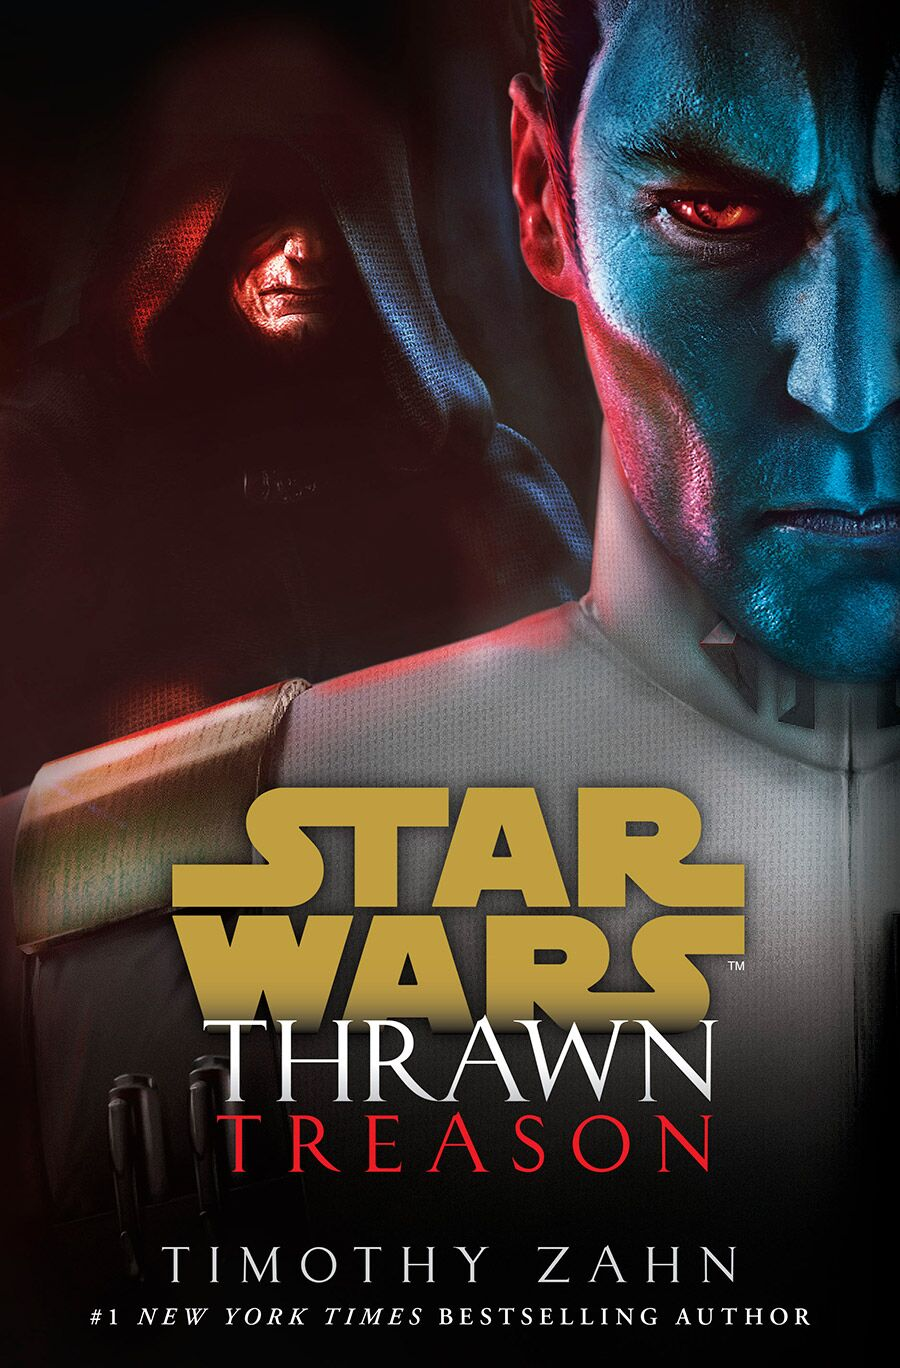 Review: Thrawn: Treason is a spacefaring mystery worth the read